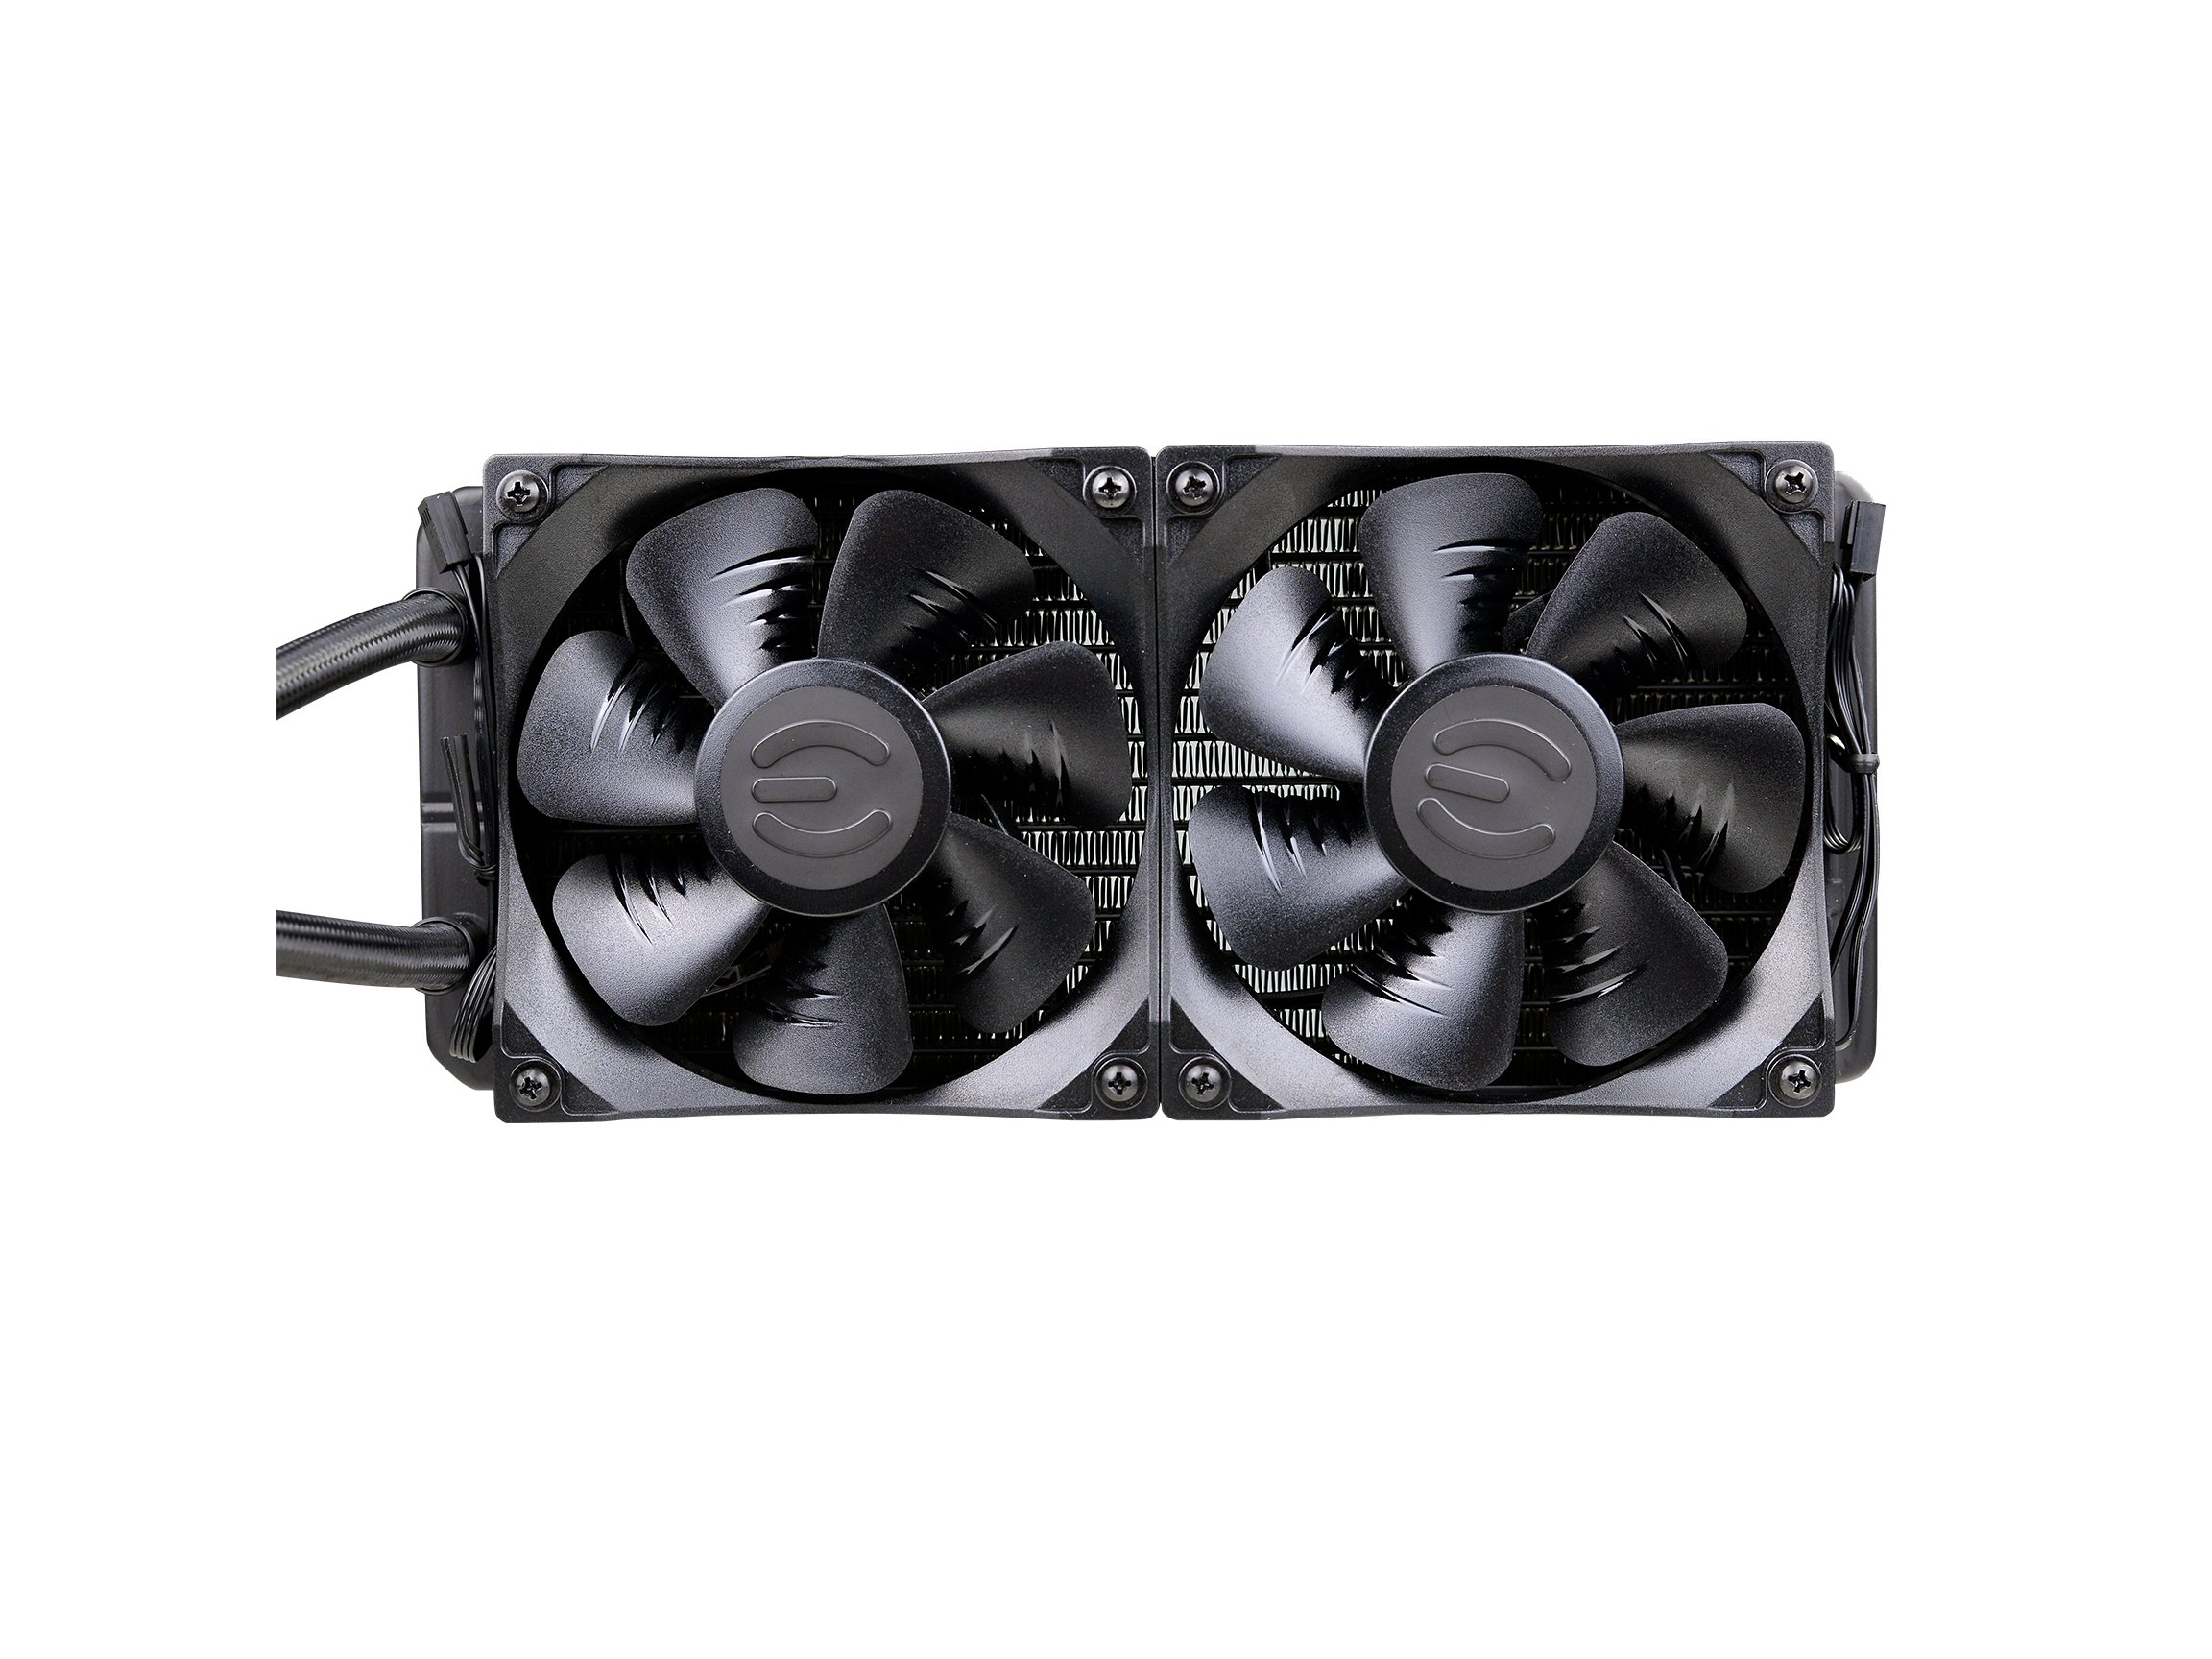 EVGA CLC 240 Liquid/Water CPU Cooler, RGB LED Cooling 400-HY-CL24-V1 by EVGA (Image #5)